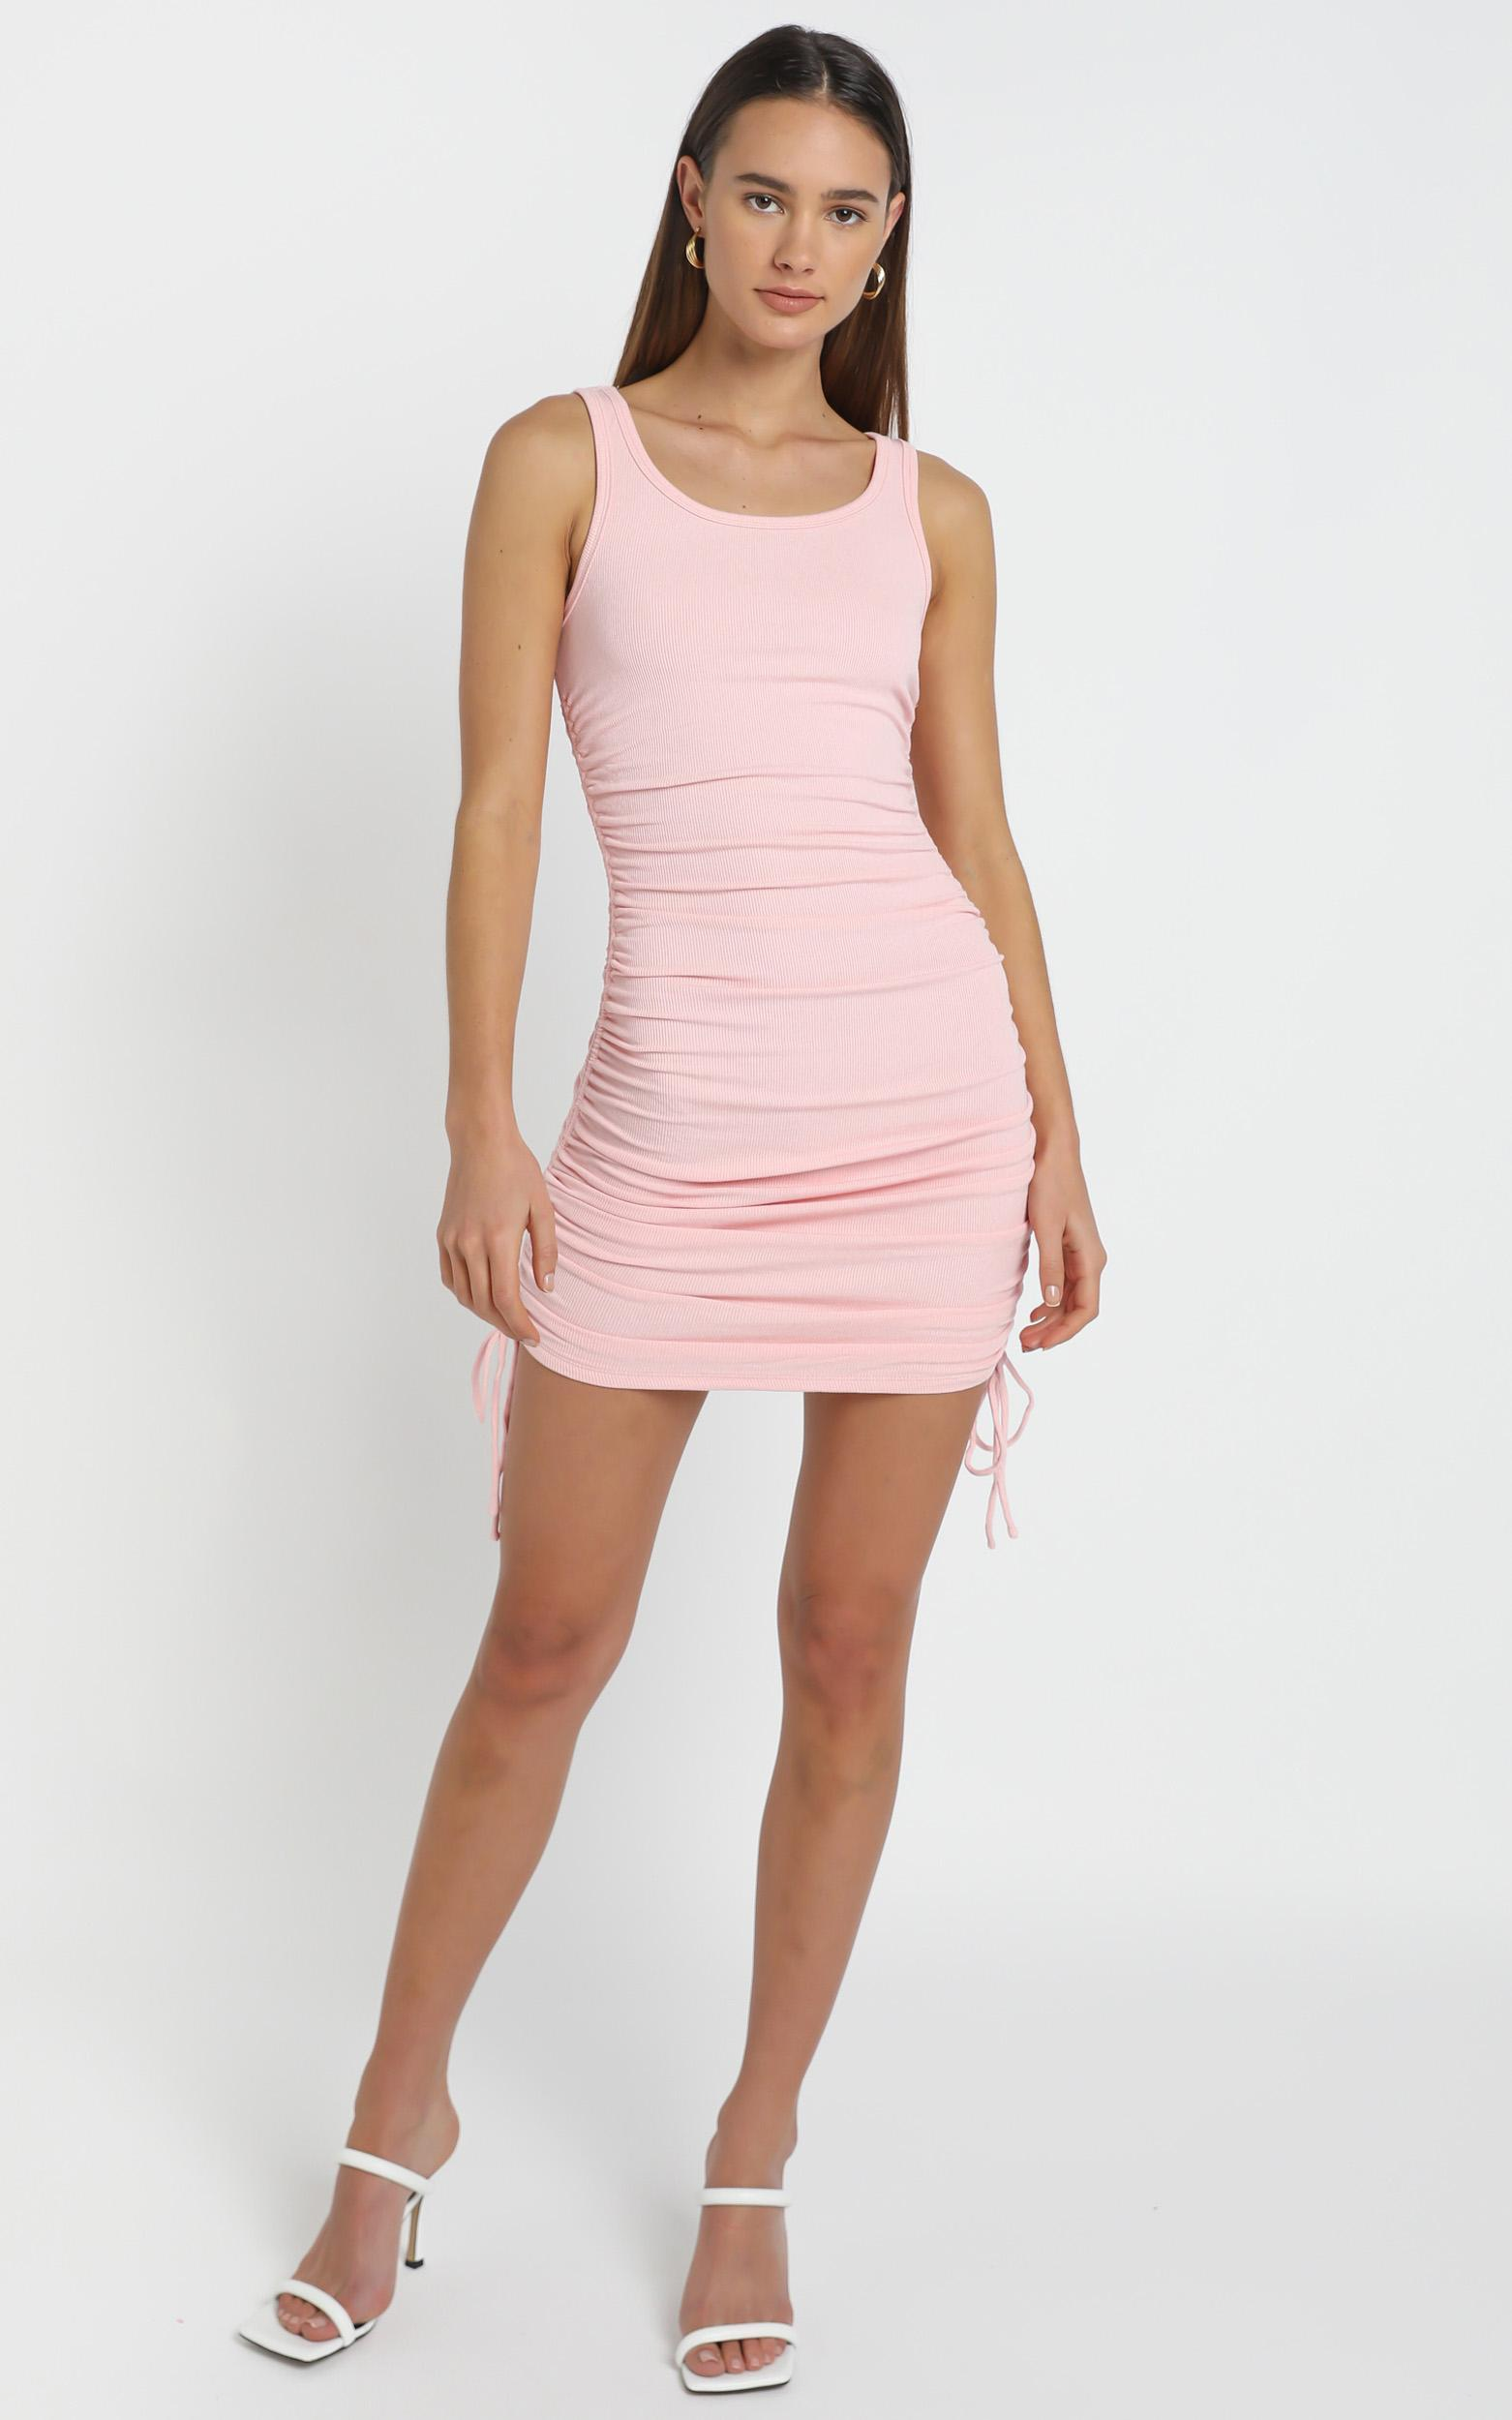 Kailey Dress in Pink - 12 (L), Pink, hi-res image number null